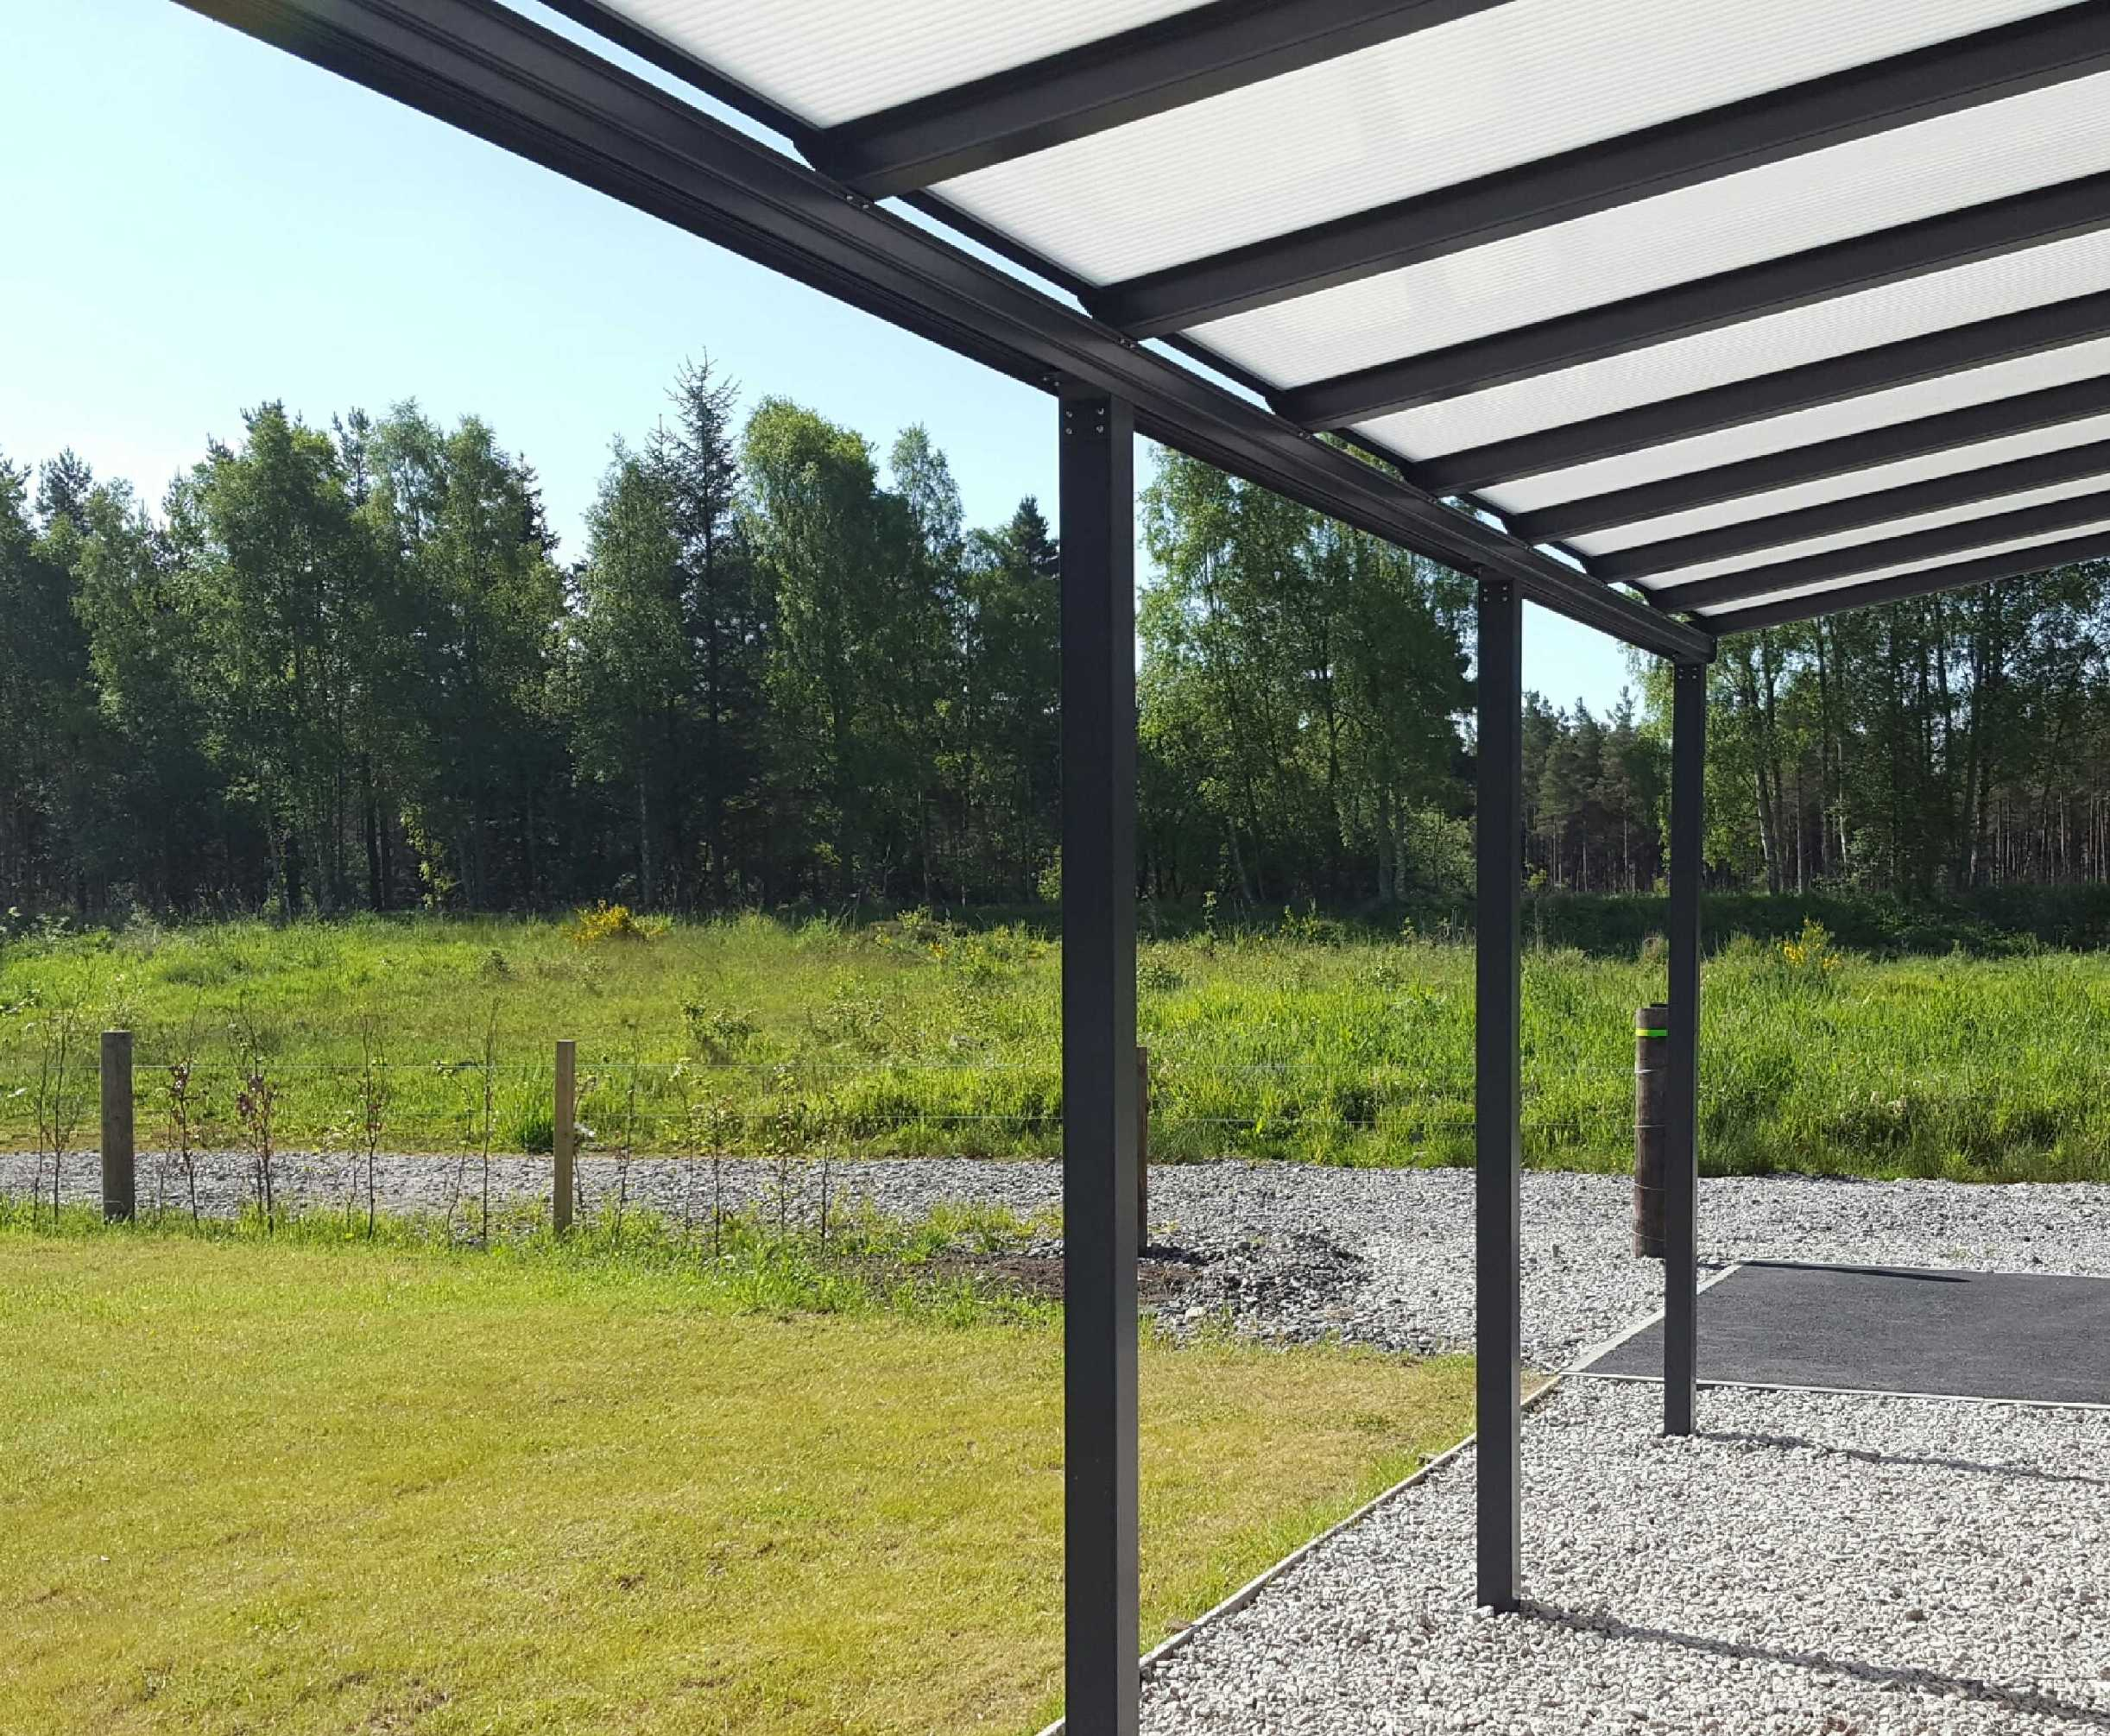 Omega Smart Lean-To Canopy, Anthracite Grey, 16mm Polycarbonate Glazing - 5.6m (W) x 4.0m (P), (3) Supporting Posts